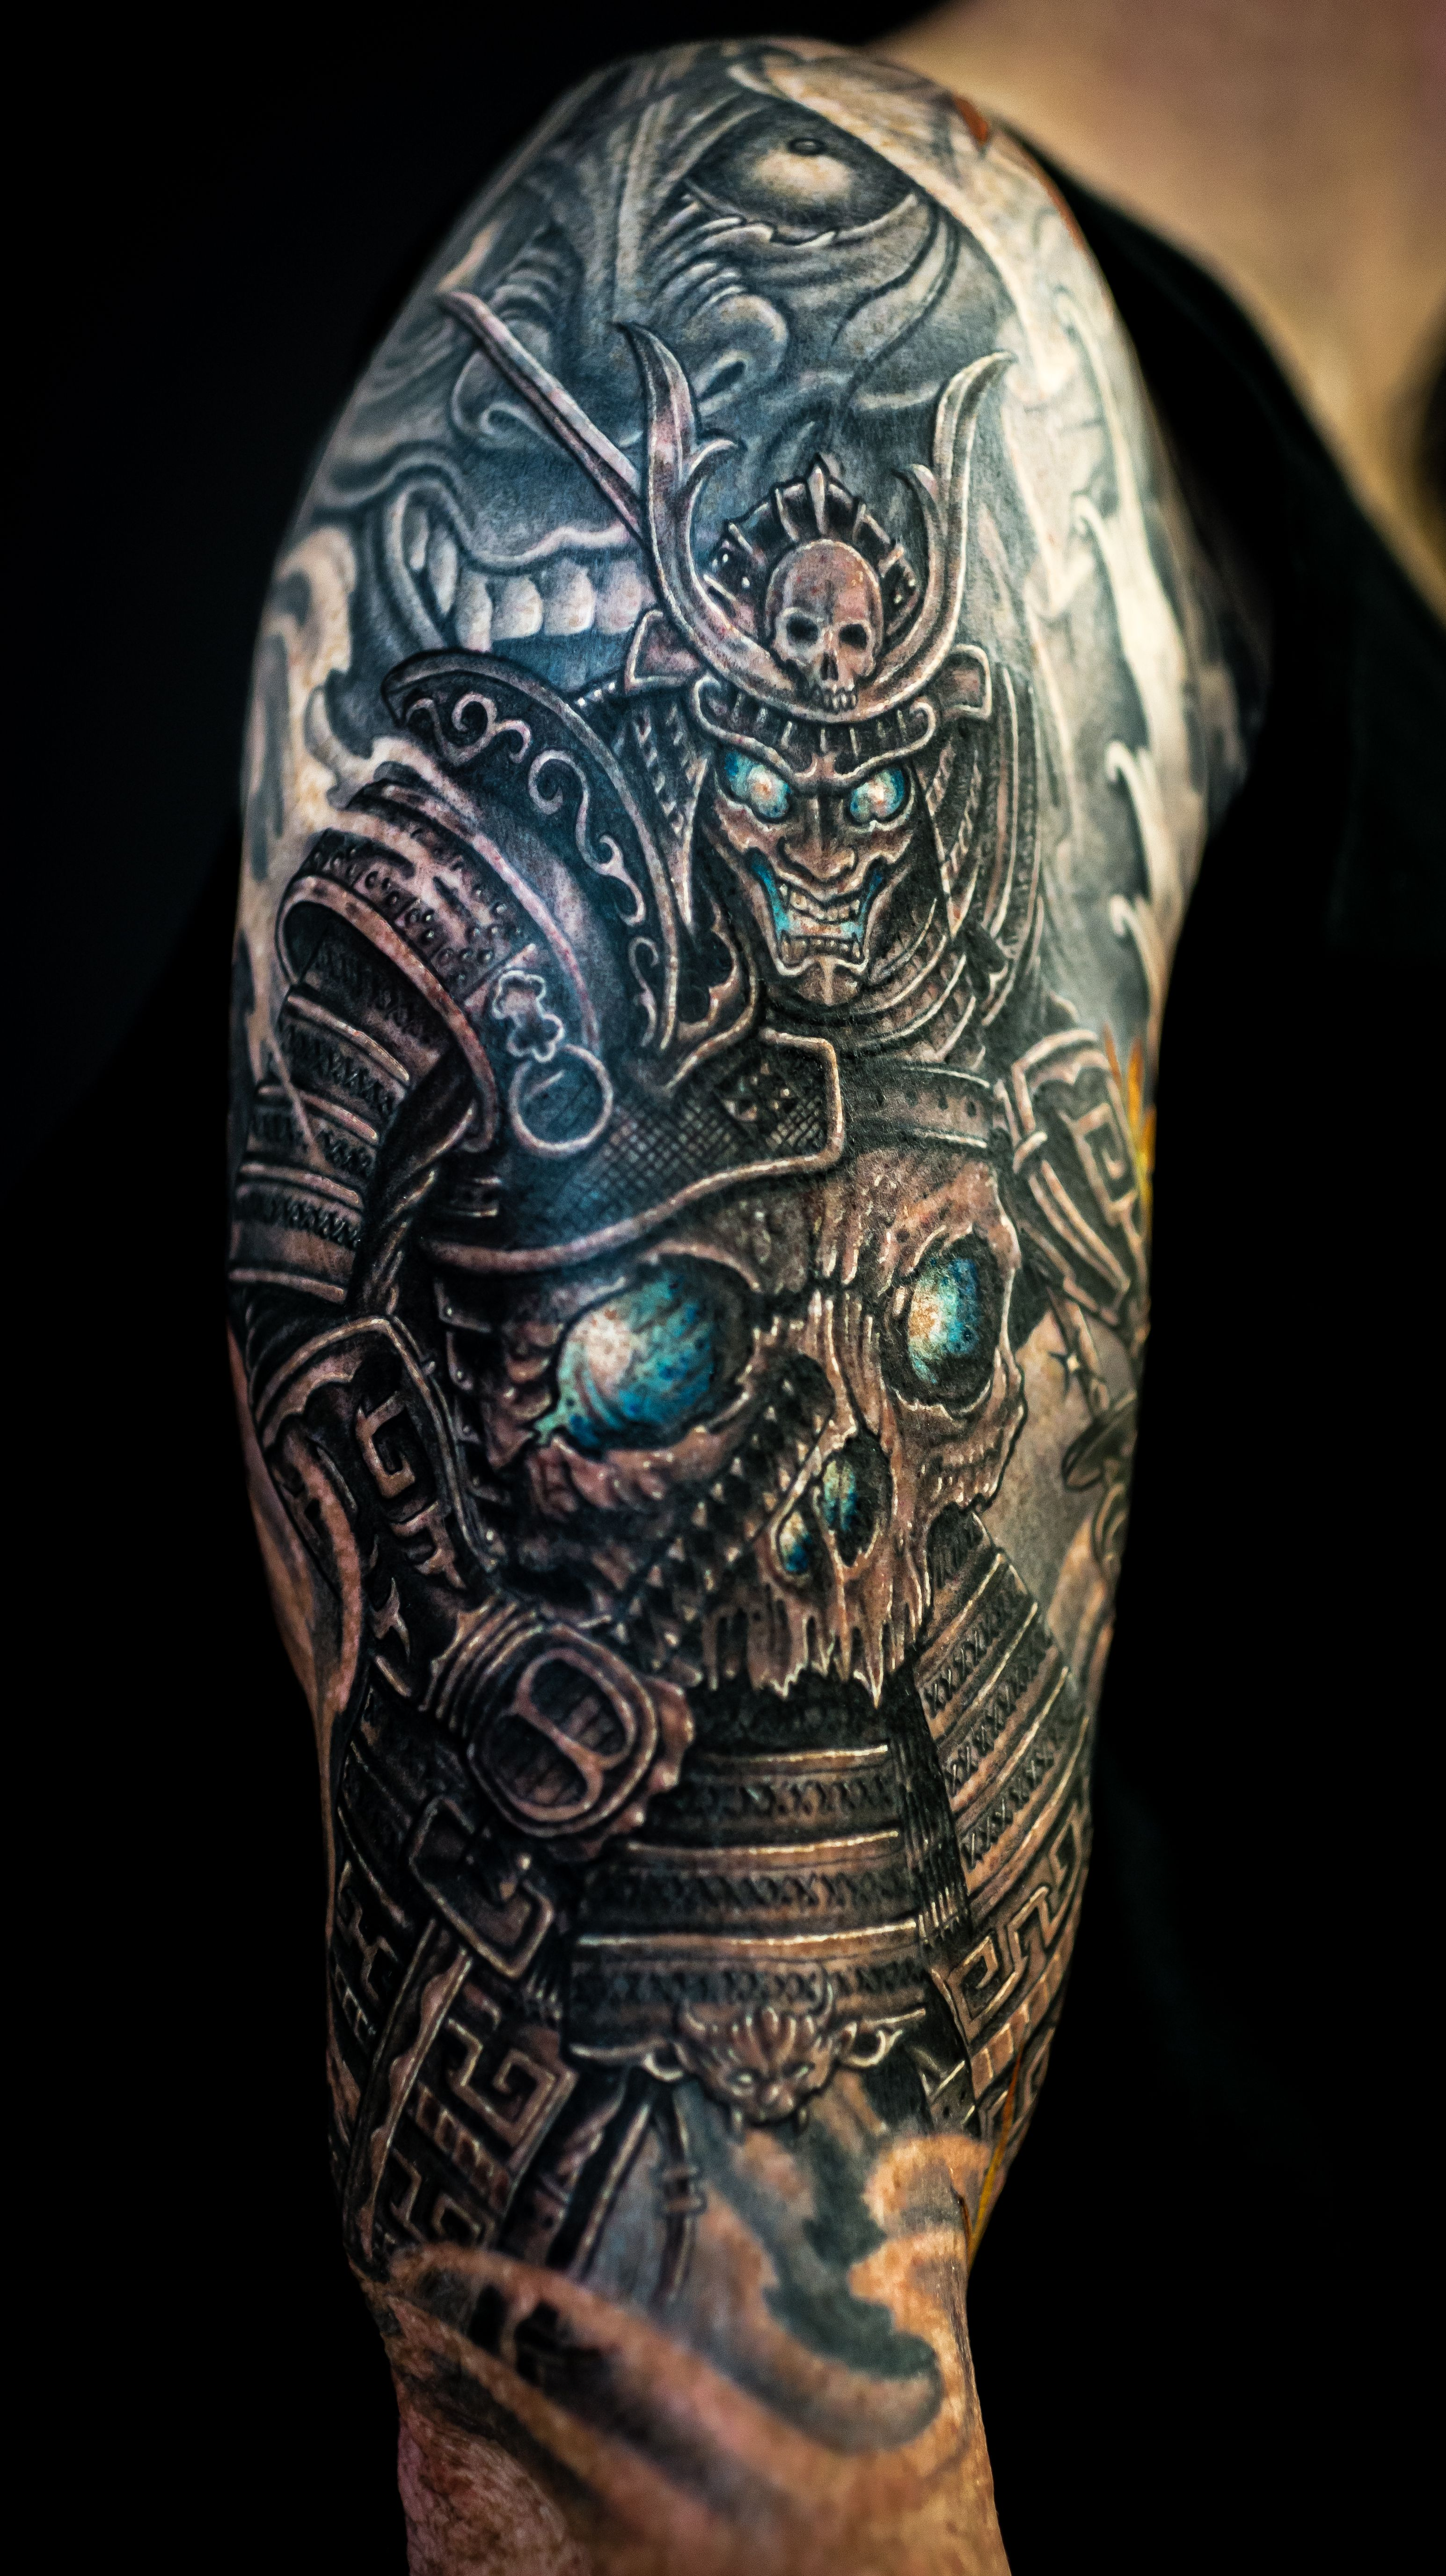 2017 01 badass sleeve tattoo designs - Sleeve Tattoos Samurai Google Search